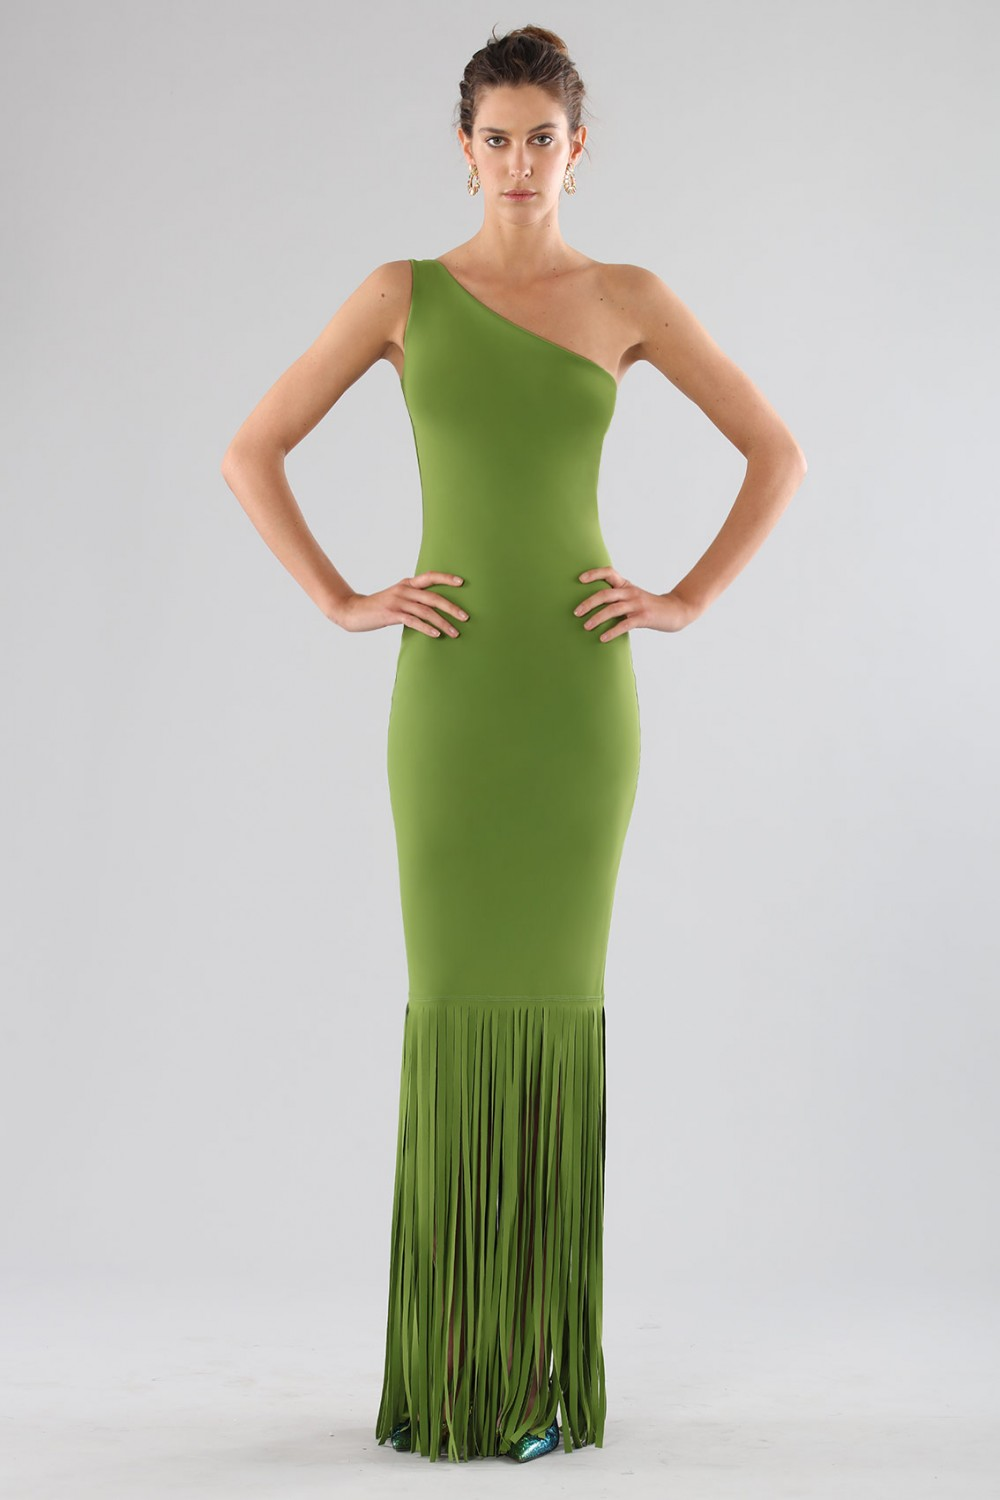 Green one-shoulder dress with fringes